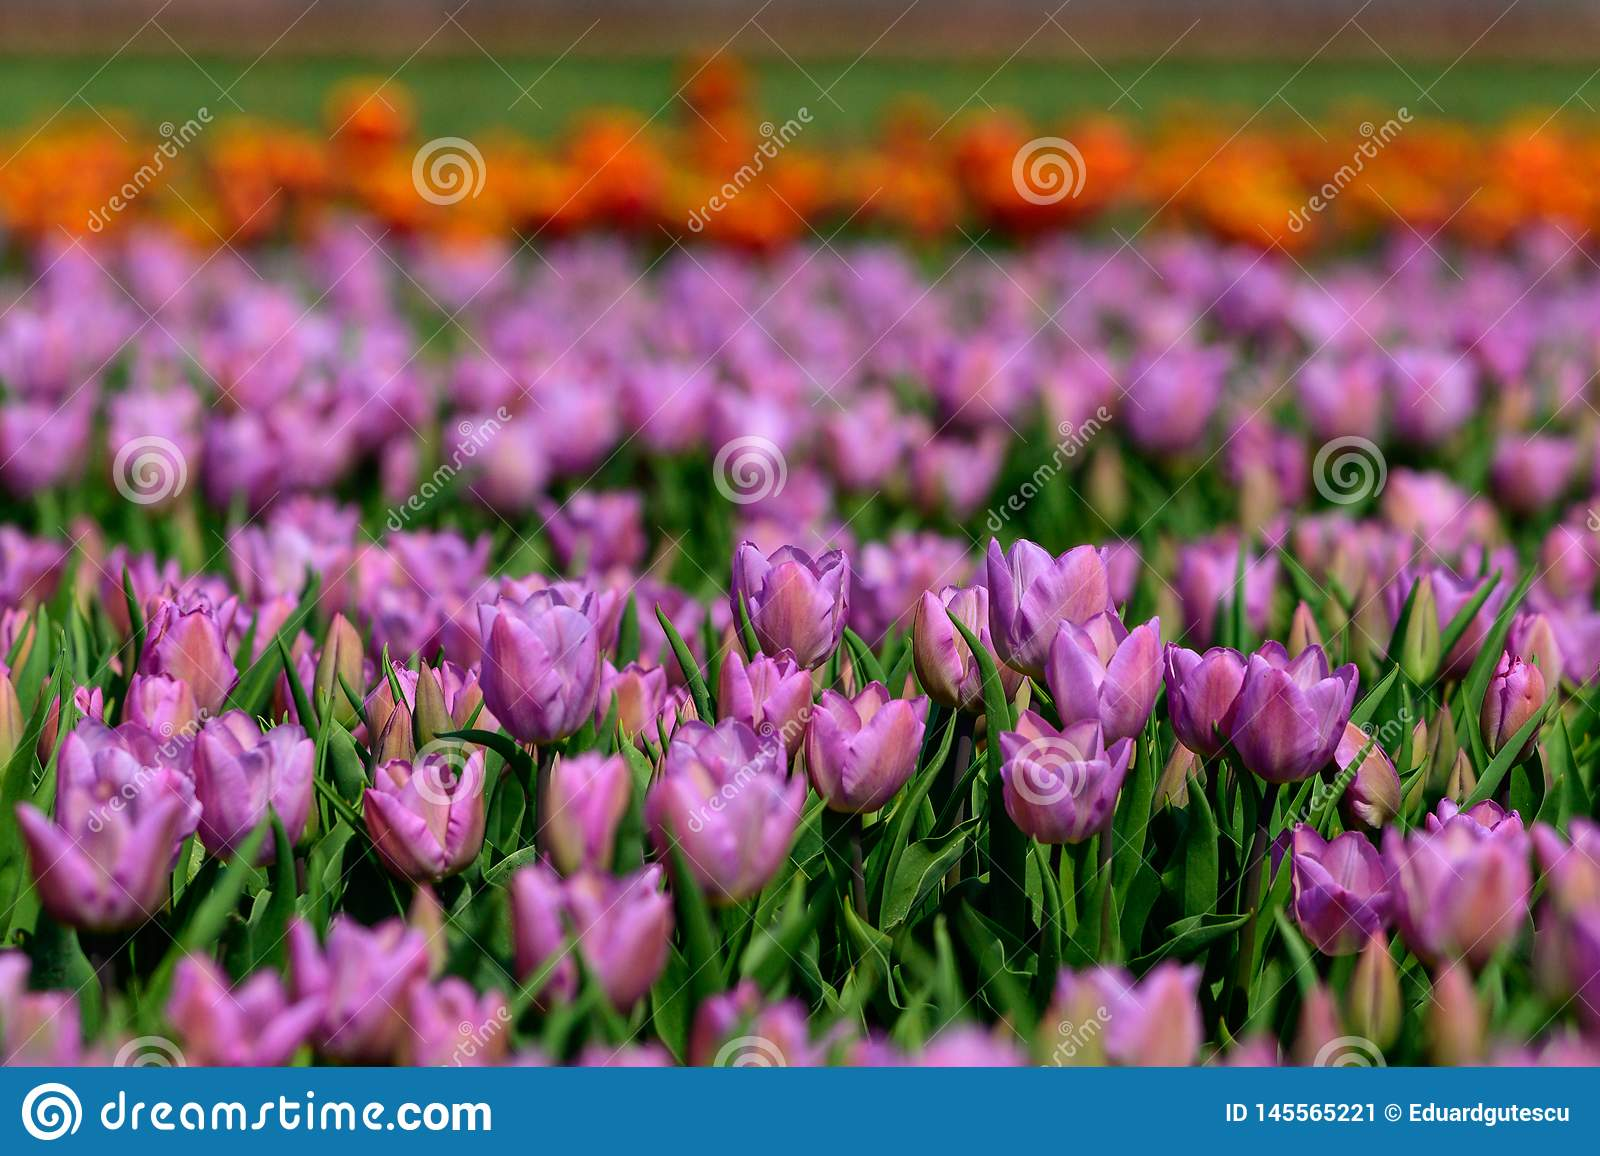 Field of violet tulips in Holland , spring time colourful flowers